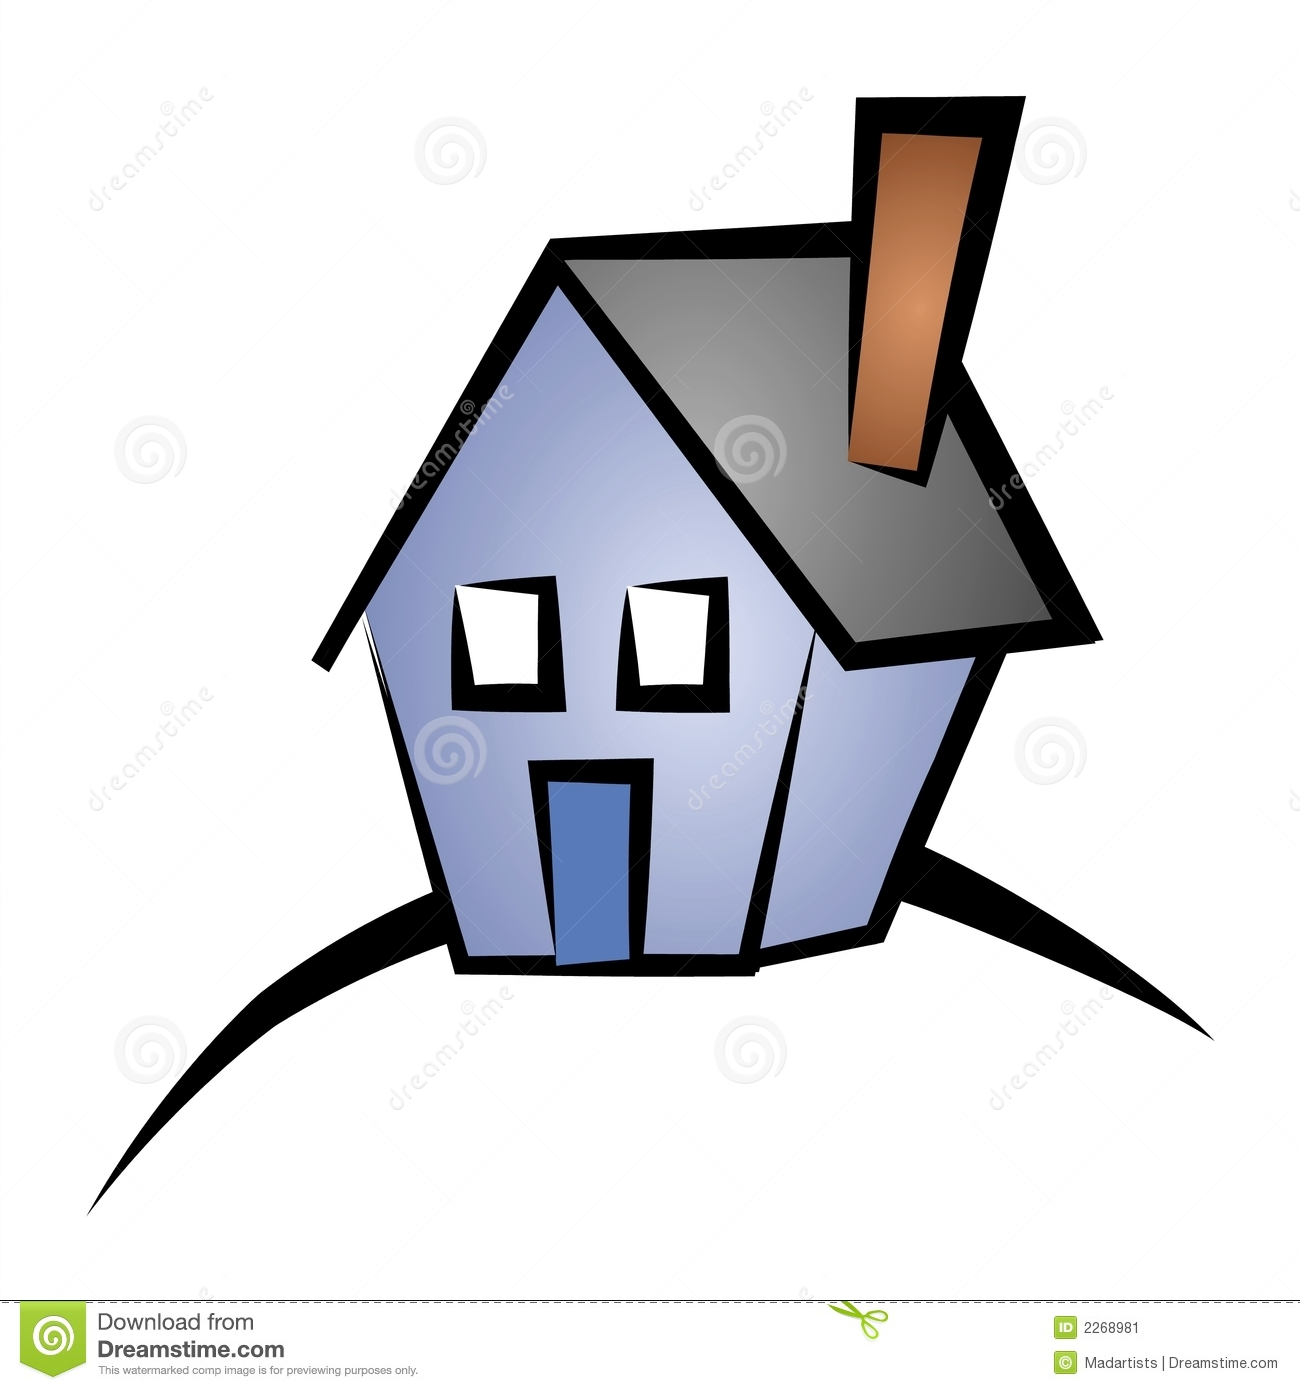 house on hill clipart - photo #12